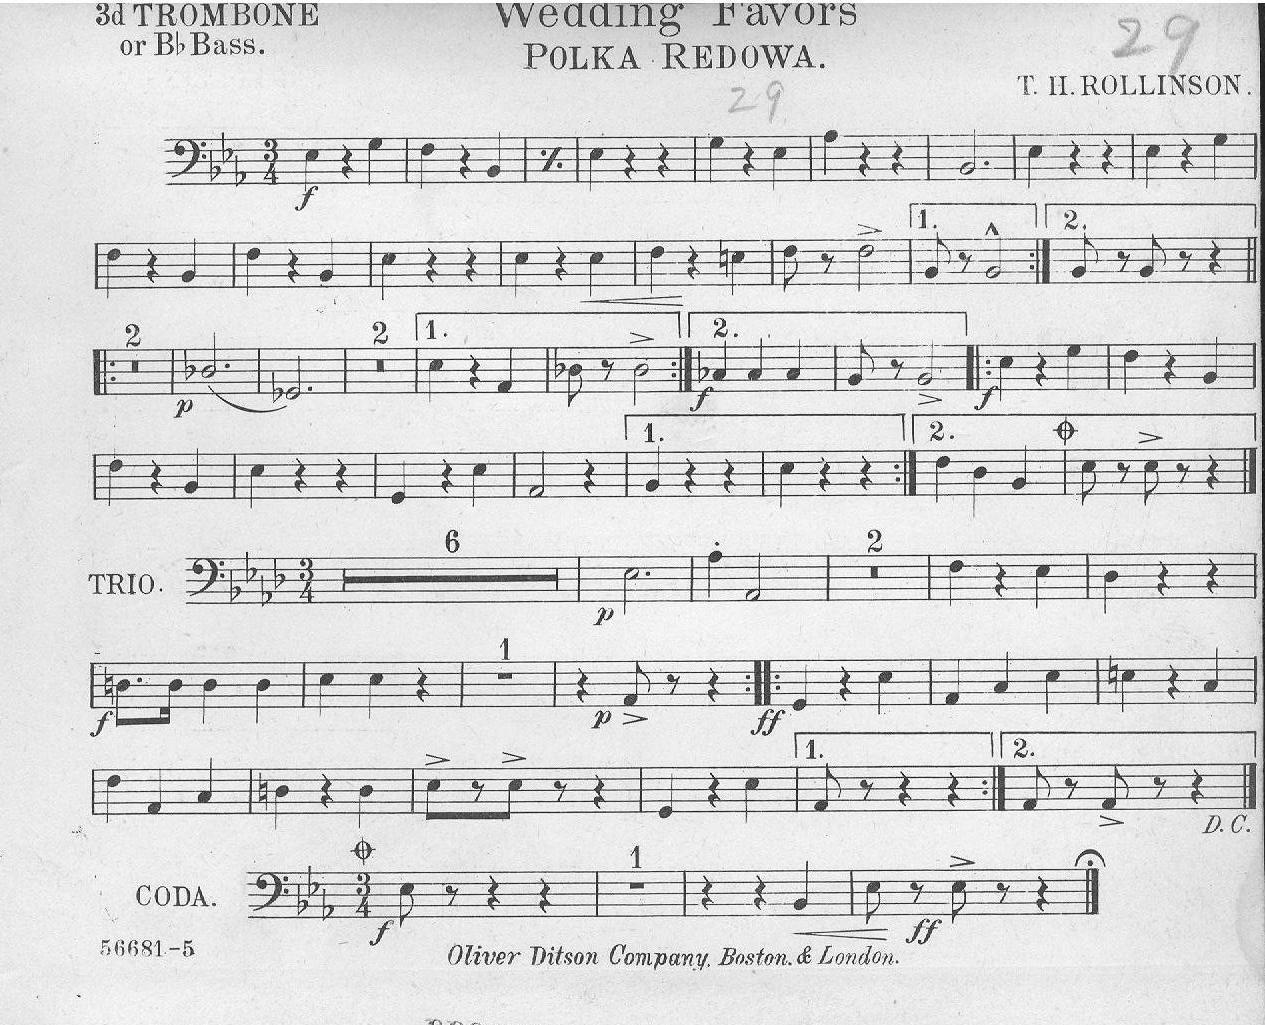 Index of /scanned/scanned music/Finished/Wedding Favors Polka Reowa